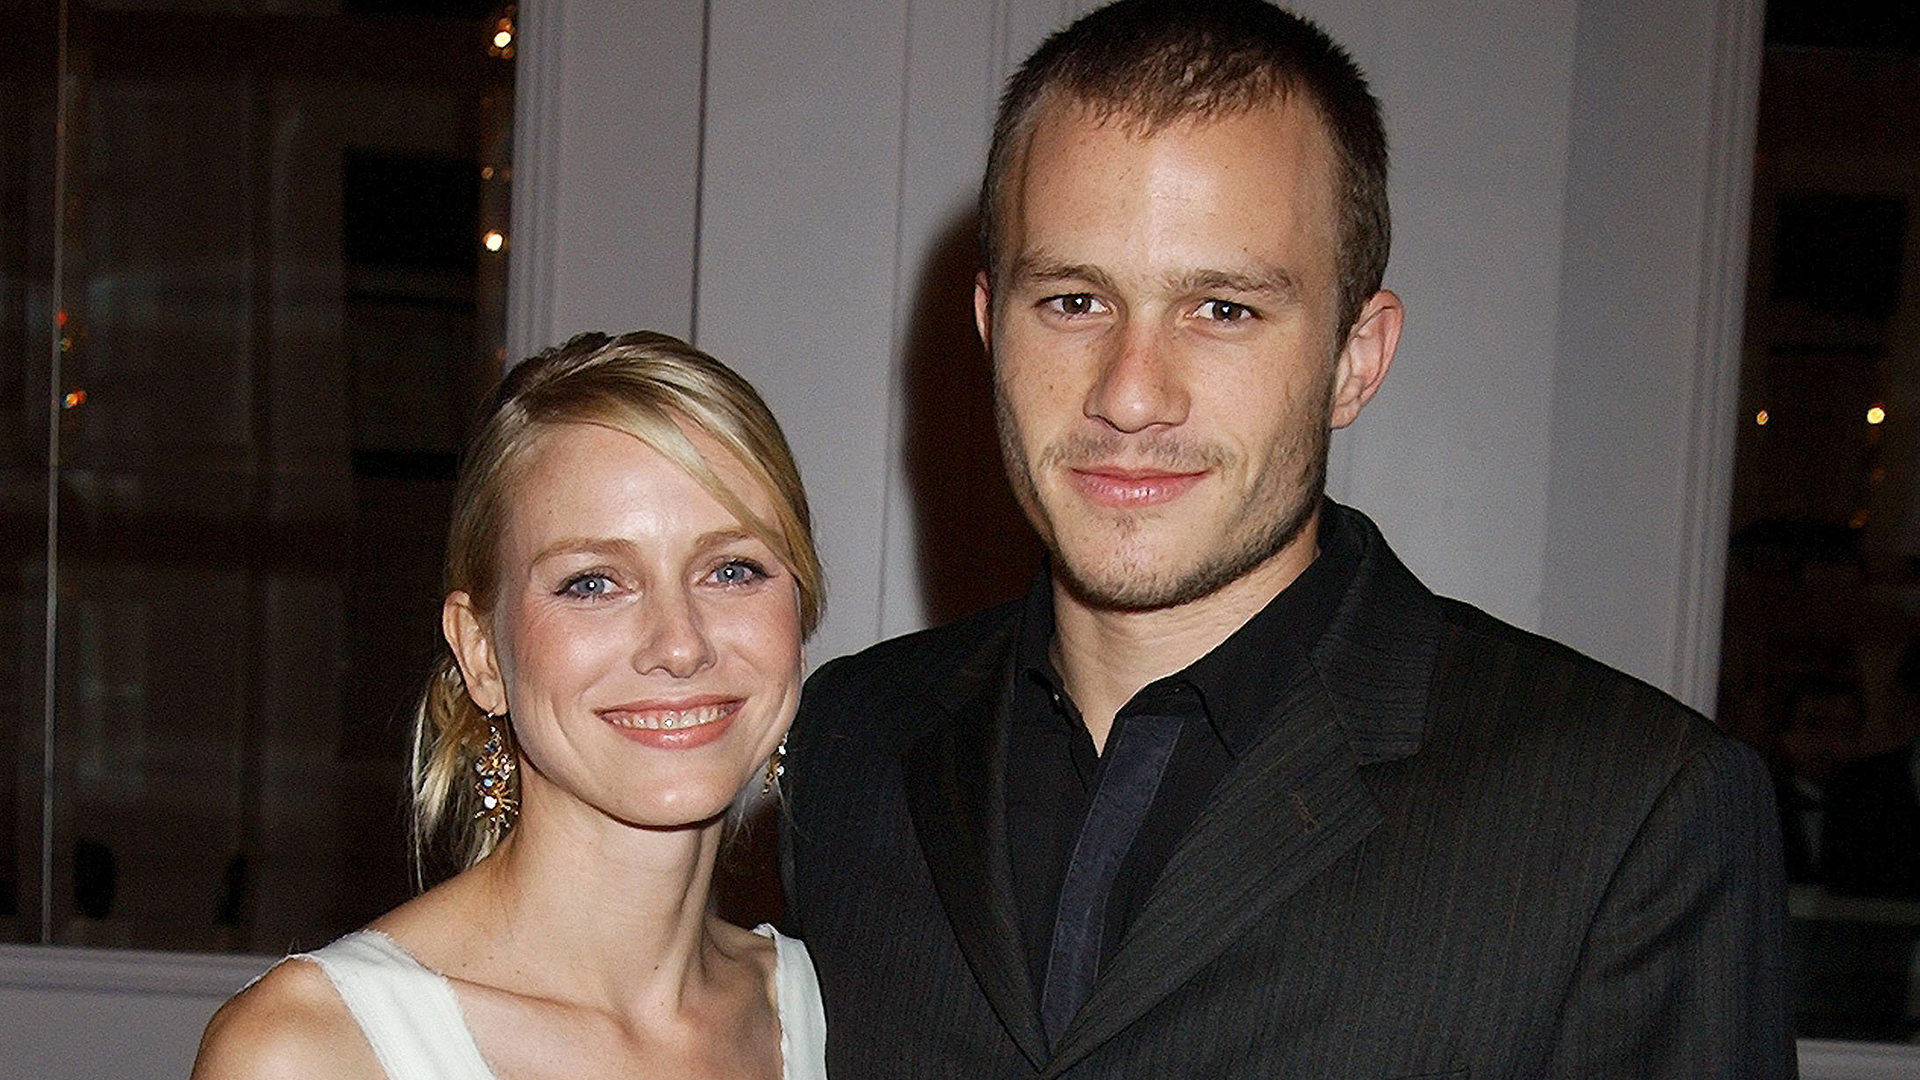 Naomi Watts opened up about Heath Ledger 10 years after his death